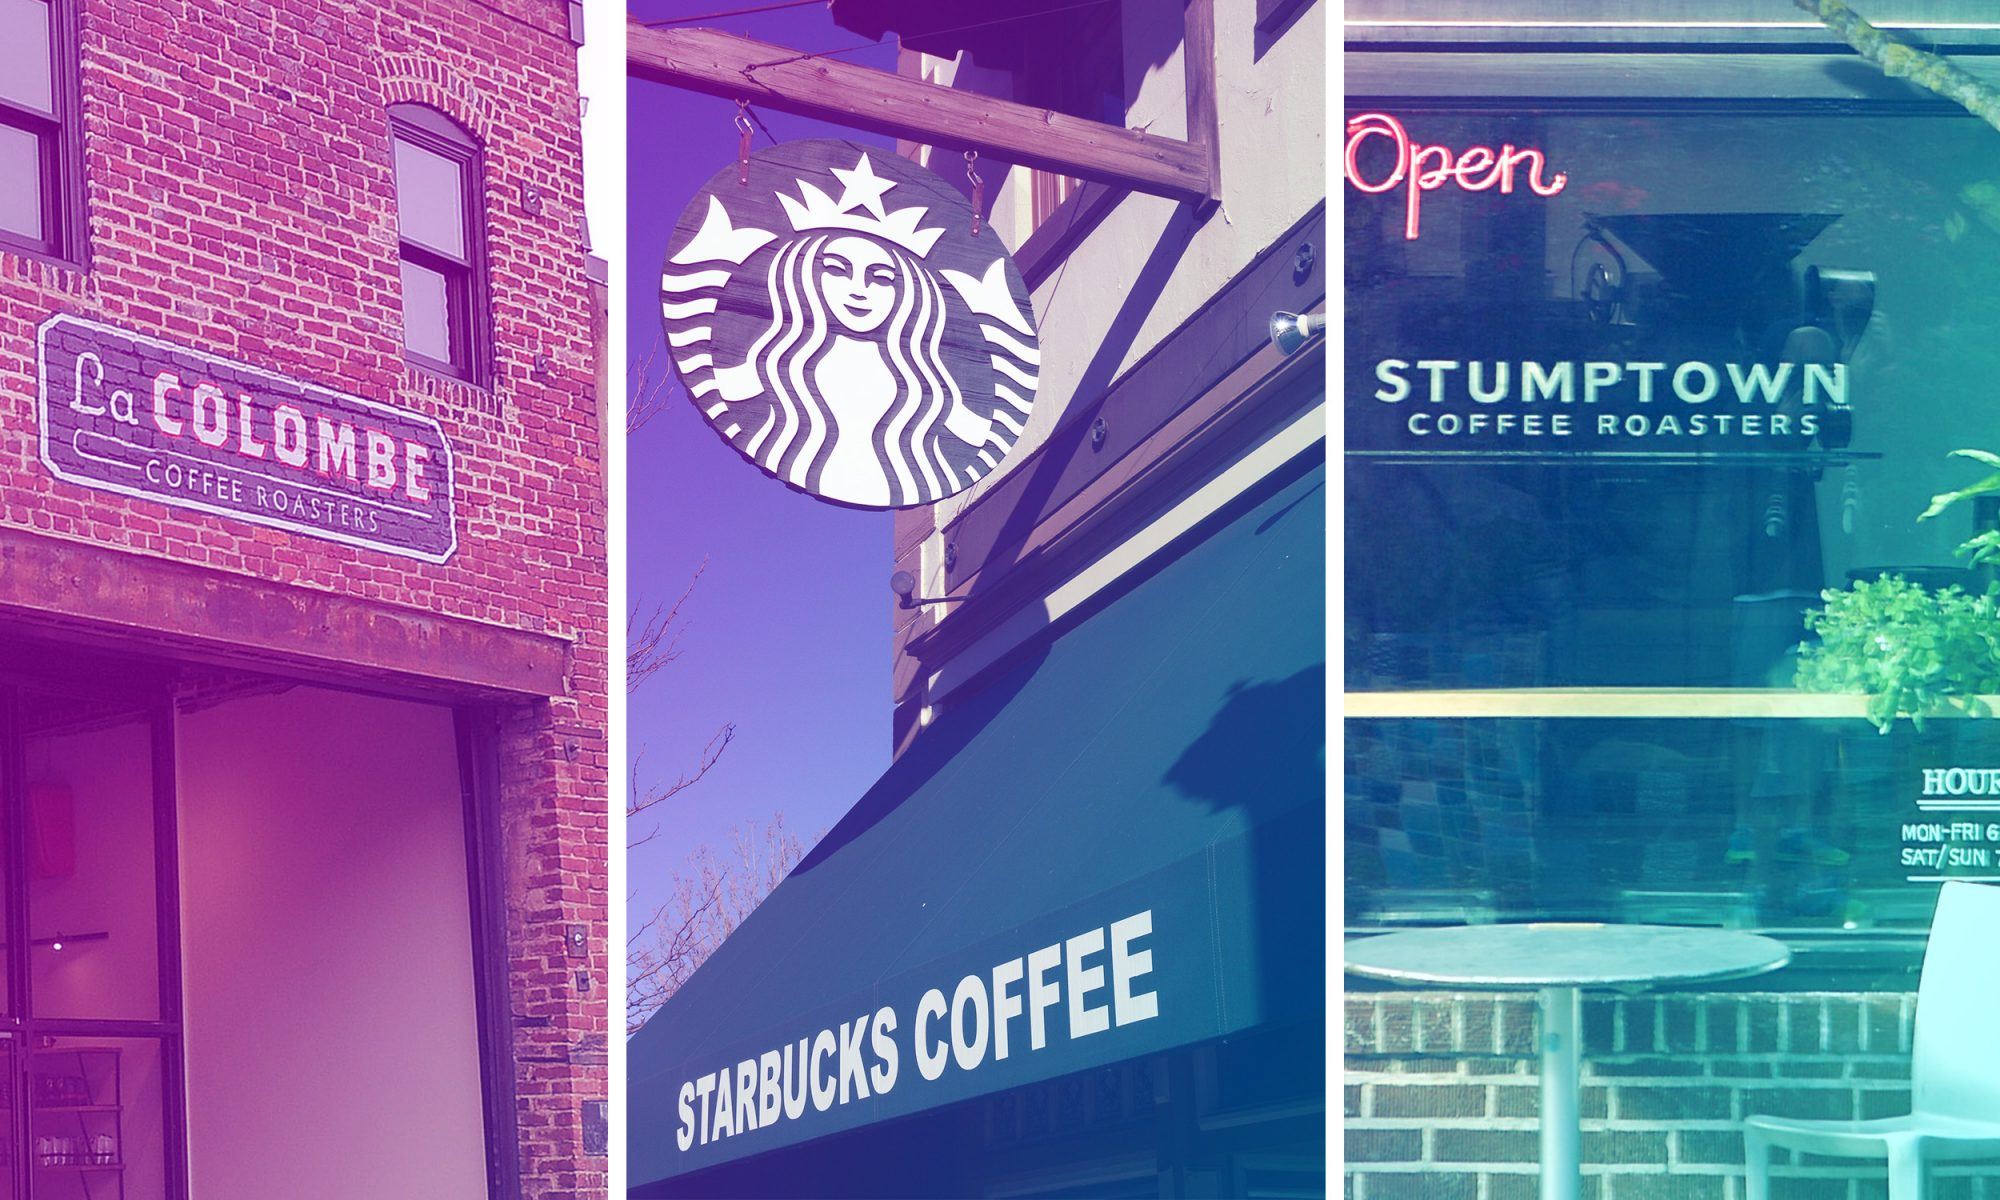 EC: The 7 Most Influential Coffee Roasters in America